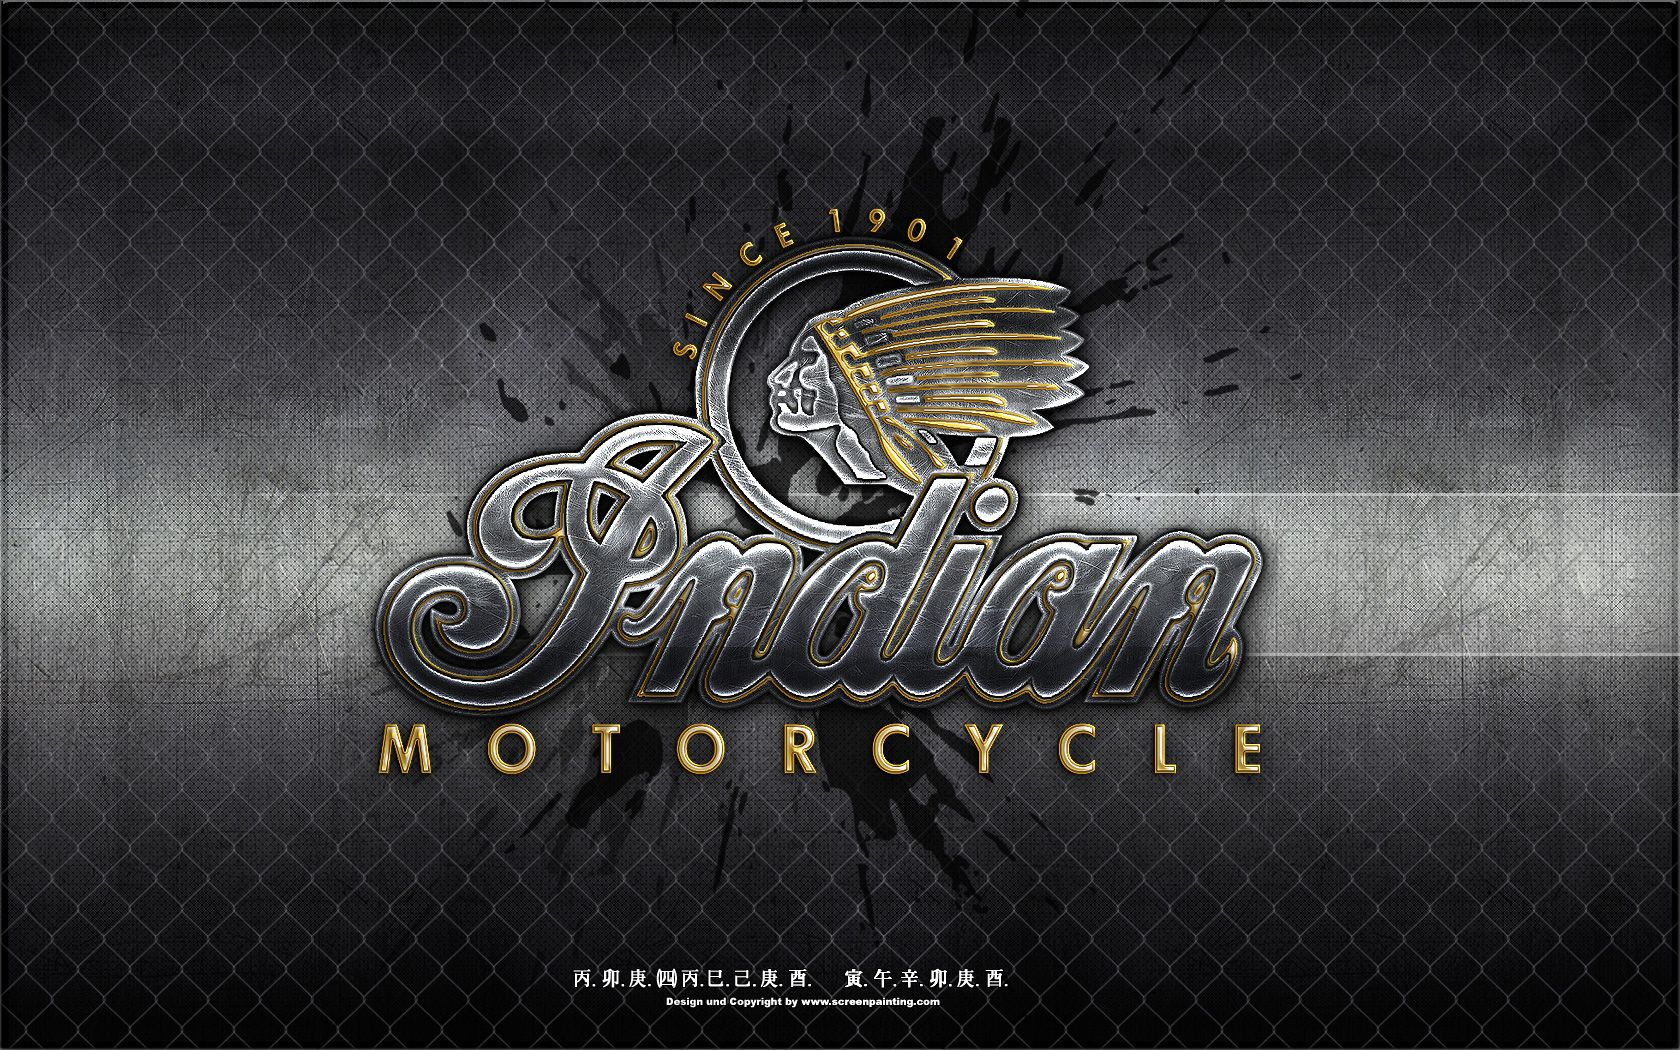 Image For Motorcycle Club Logo Background Wallpaper